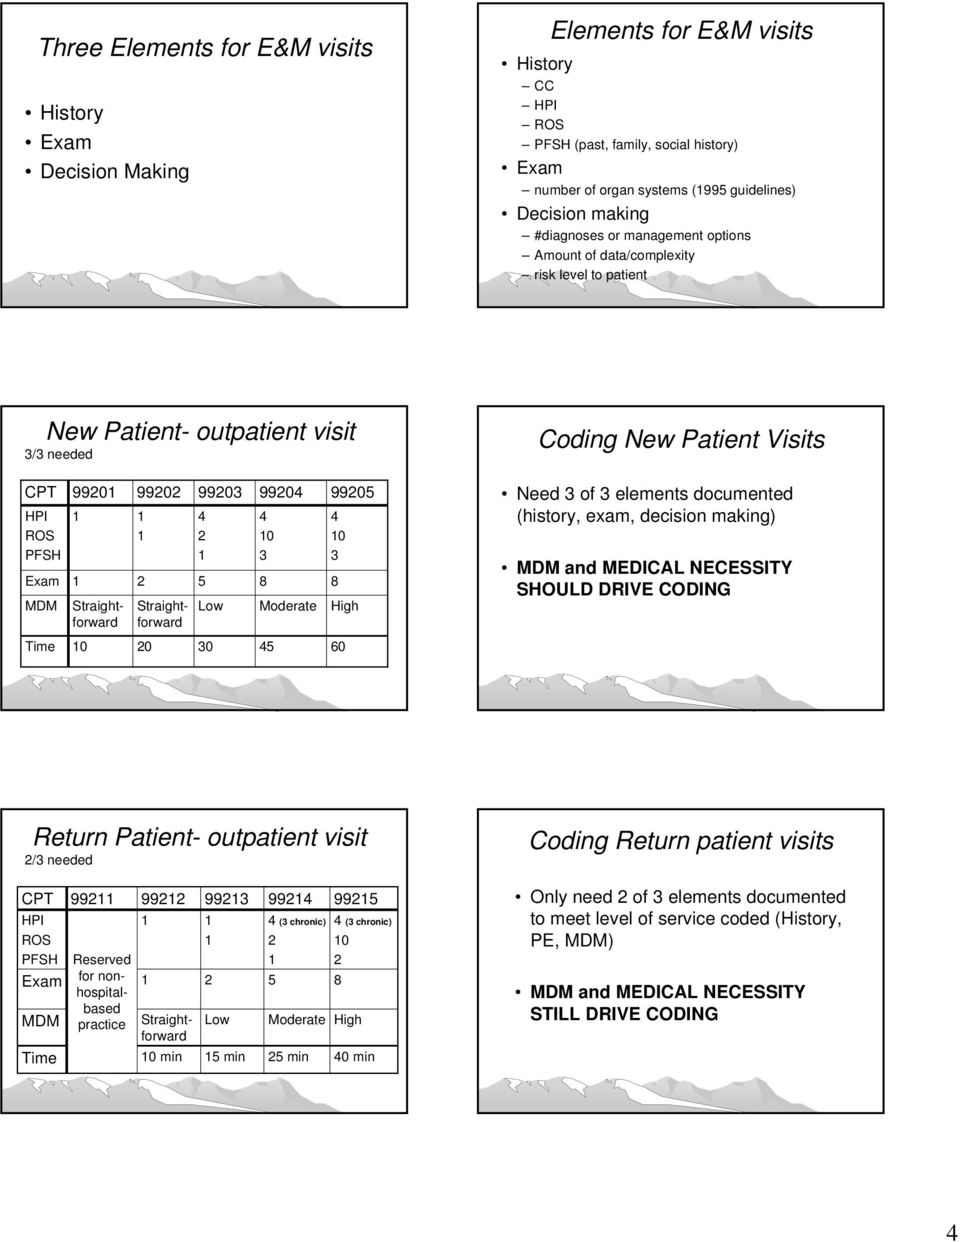 Worksheets E&m Coding Worksheet coding and billing 101 getting paid for what you do pdf straightforward 99202 2 99203 4 5 low 99204 0 3 8 moderate 99205 4